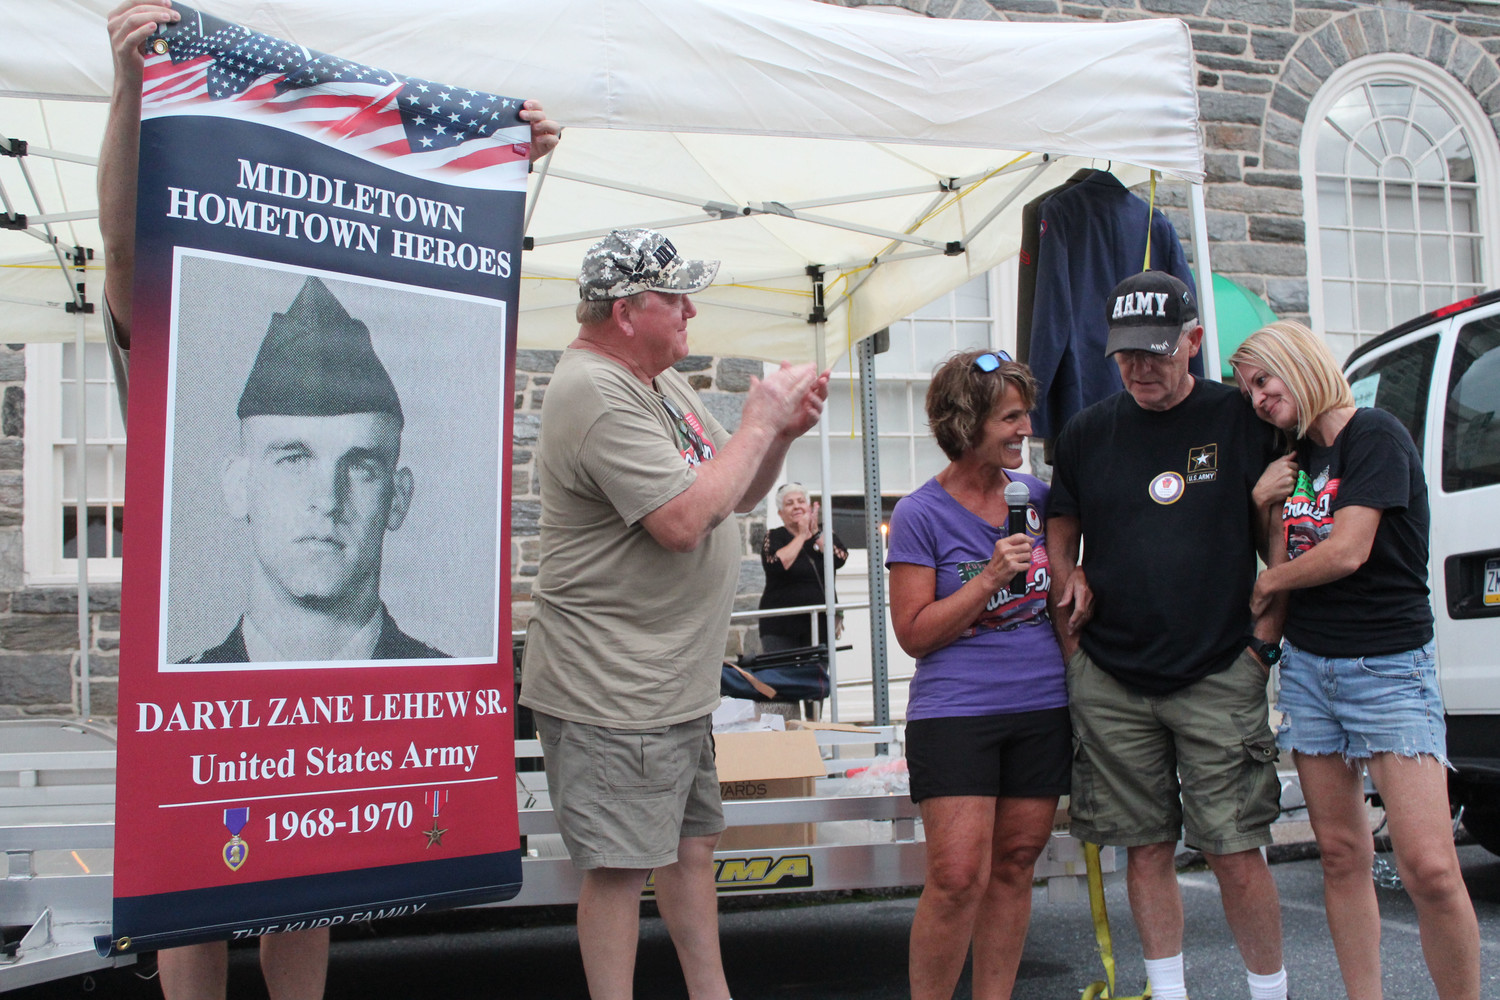 Nicole Besic, right, hugs her father, Daryl Lehew, on Thursday as Irvin Turpin Jr. claps and Carol Kupp watches. The Kupps had a Middletown Hometown Heroes banner made for Lehew, a U.S. Army veteran, which is now on top of Kuppy's Diner. Turpin, an Air Force veteran, also received a banner.